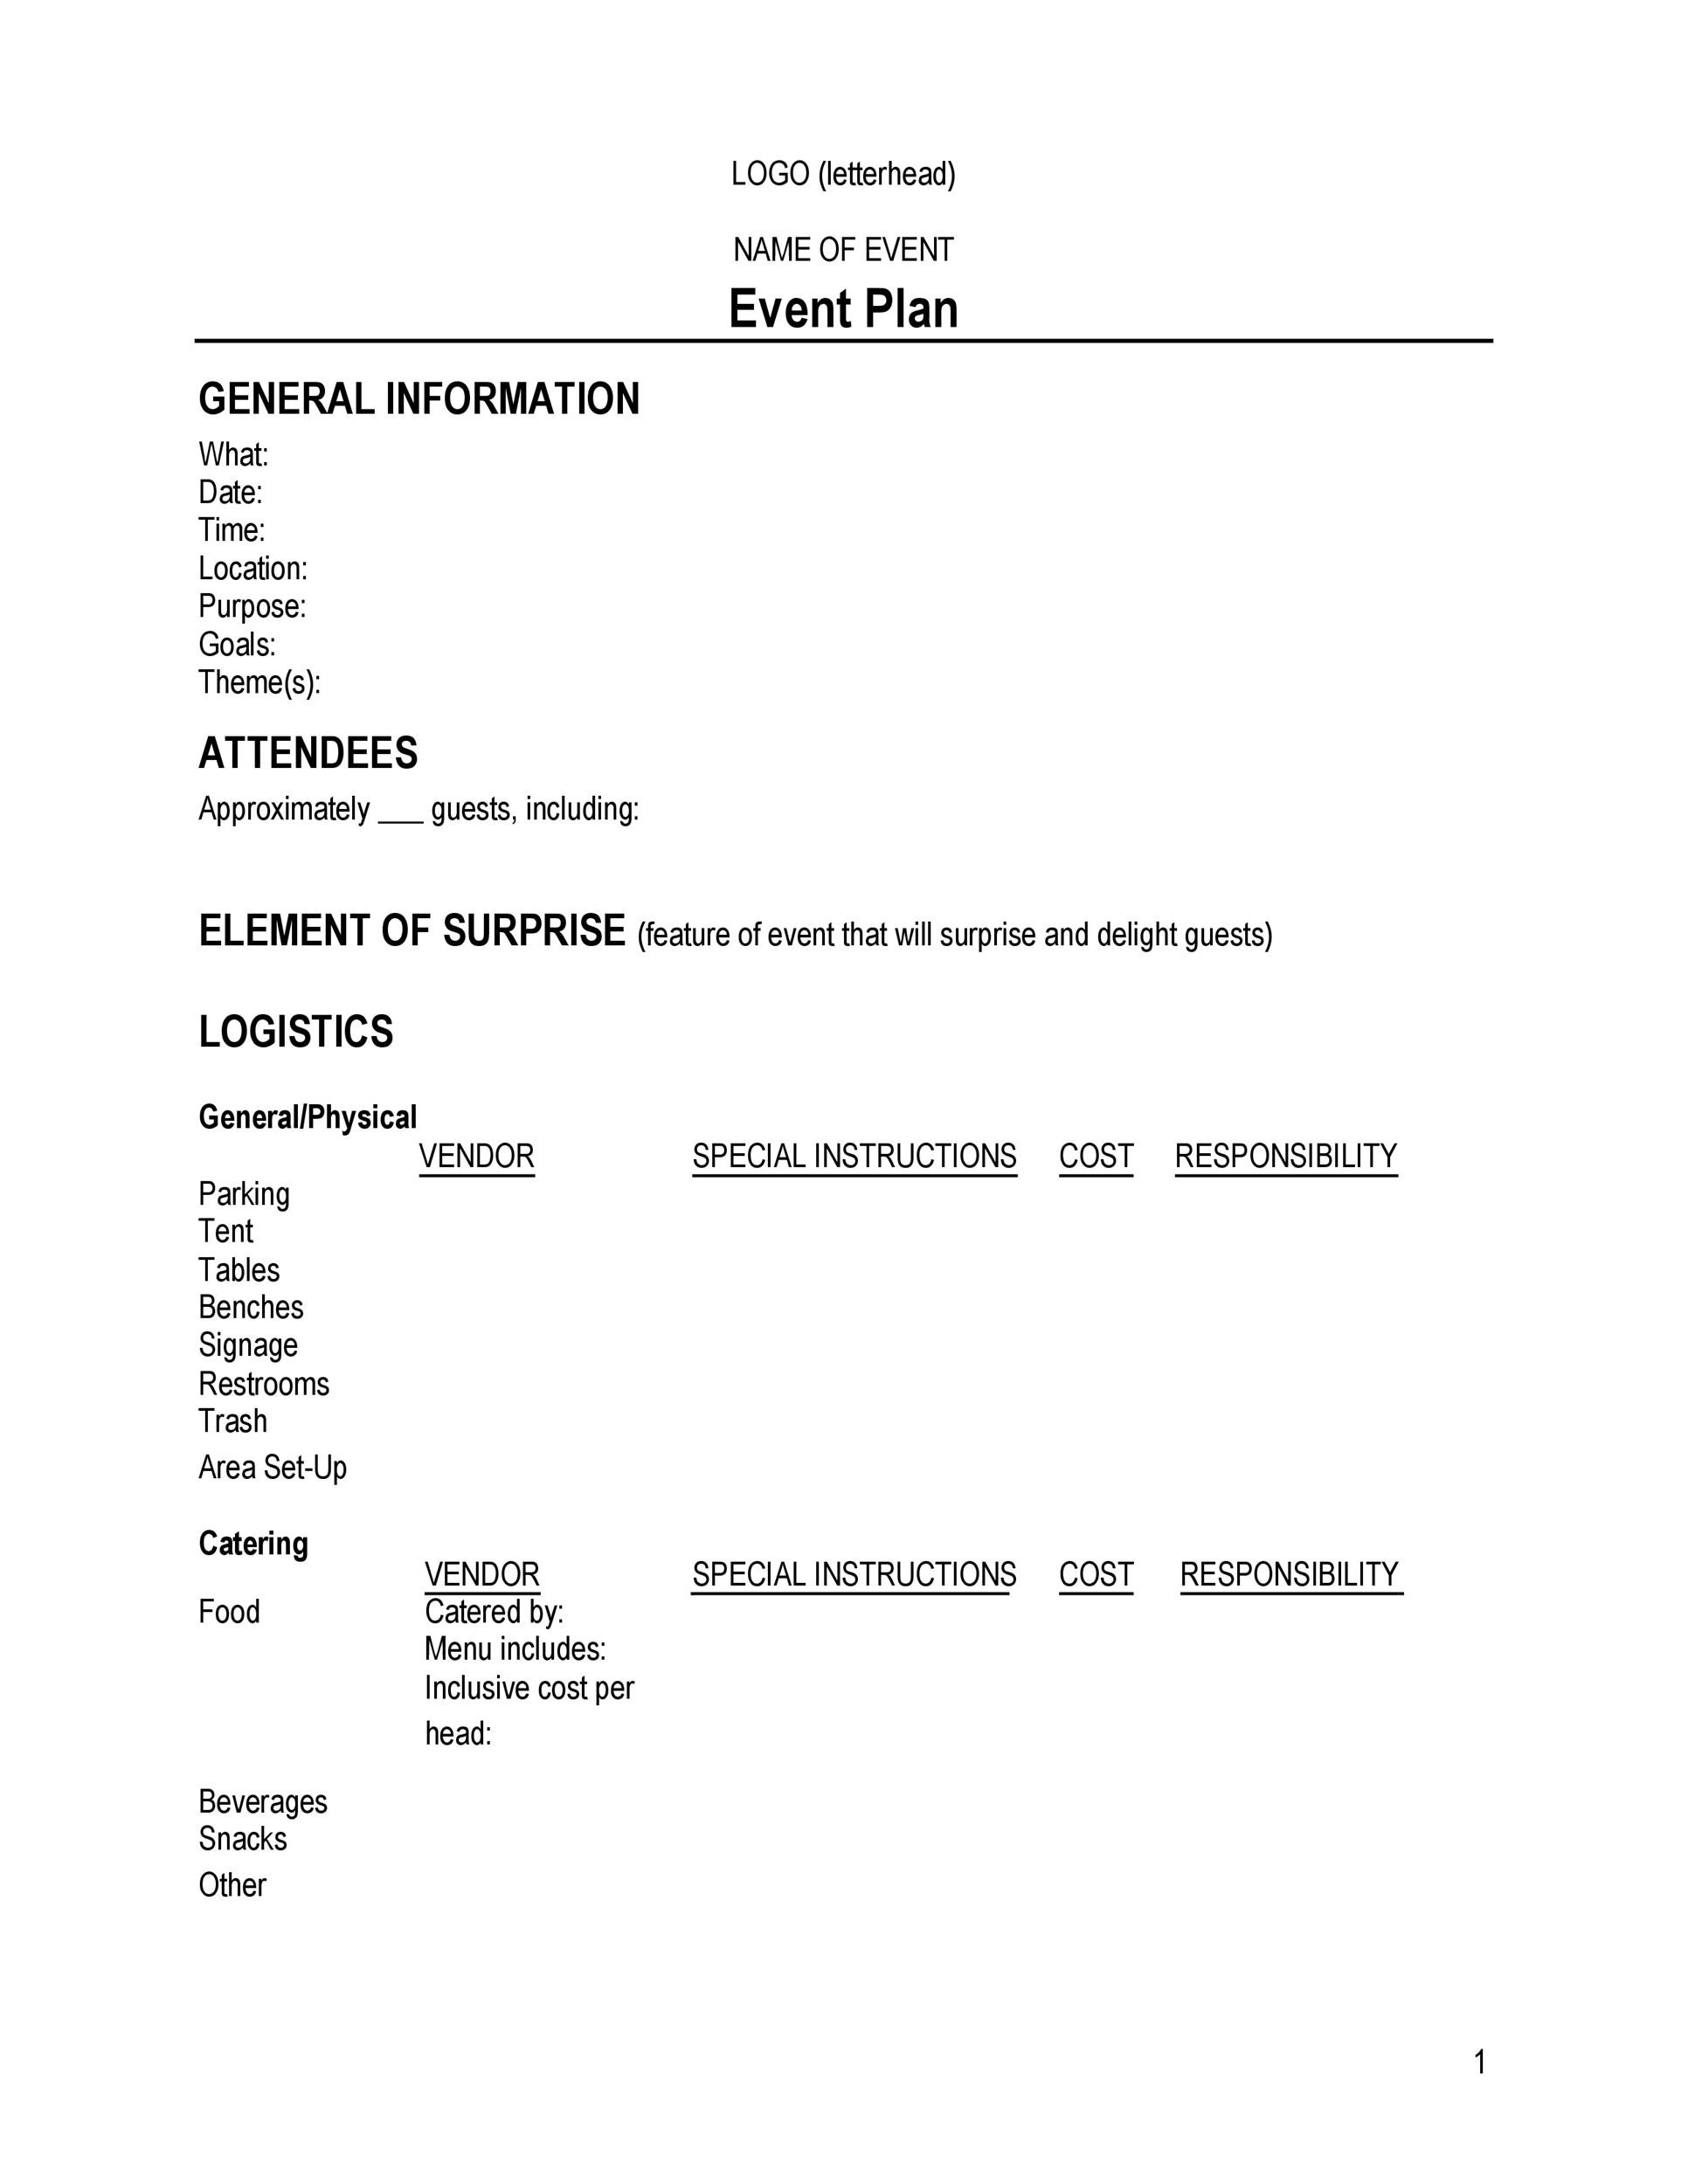 50 Professional Event Planning Checklist Templates - Template Lab